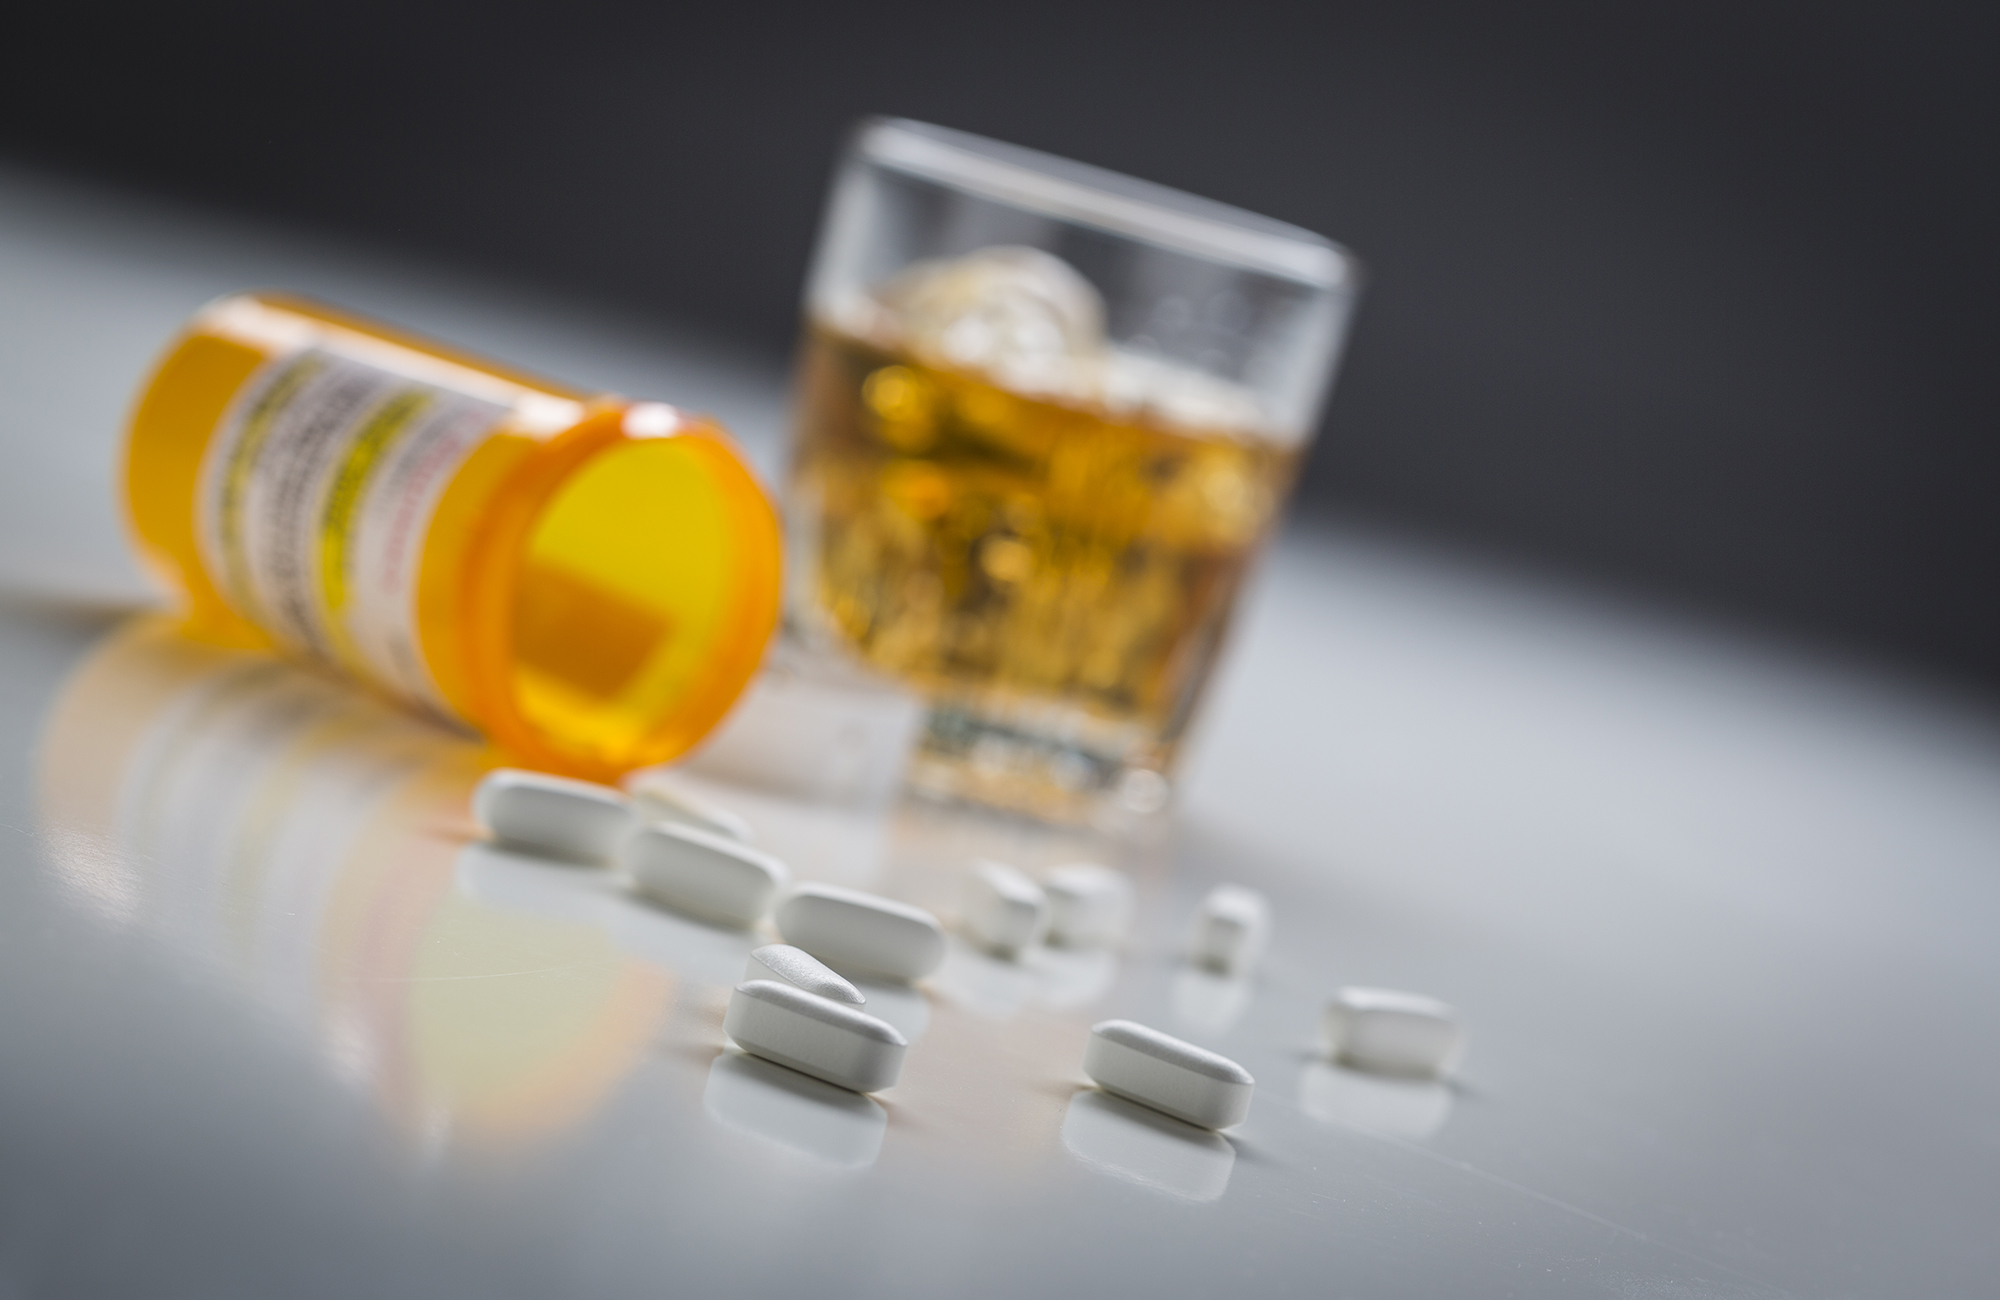 The struggle for sobriety: overcoming drug addiction